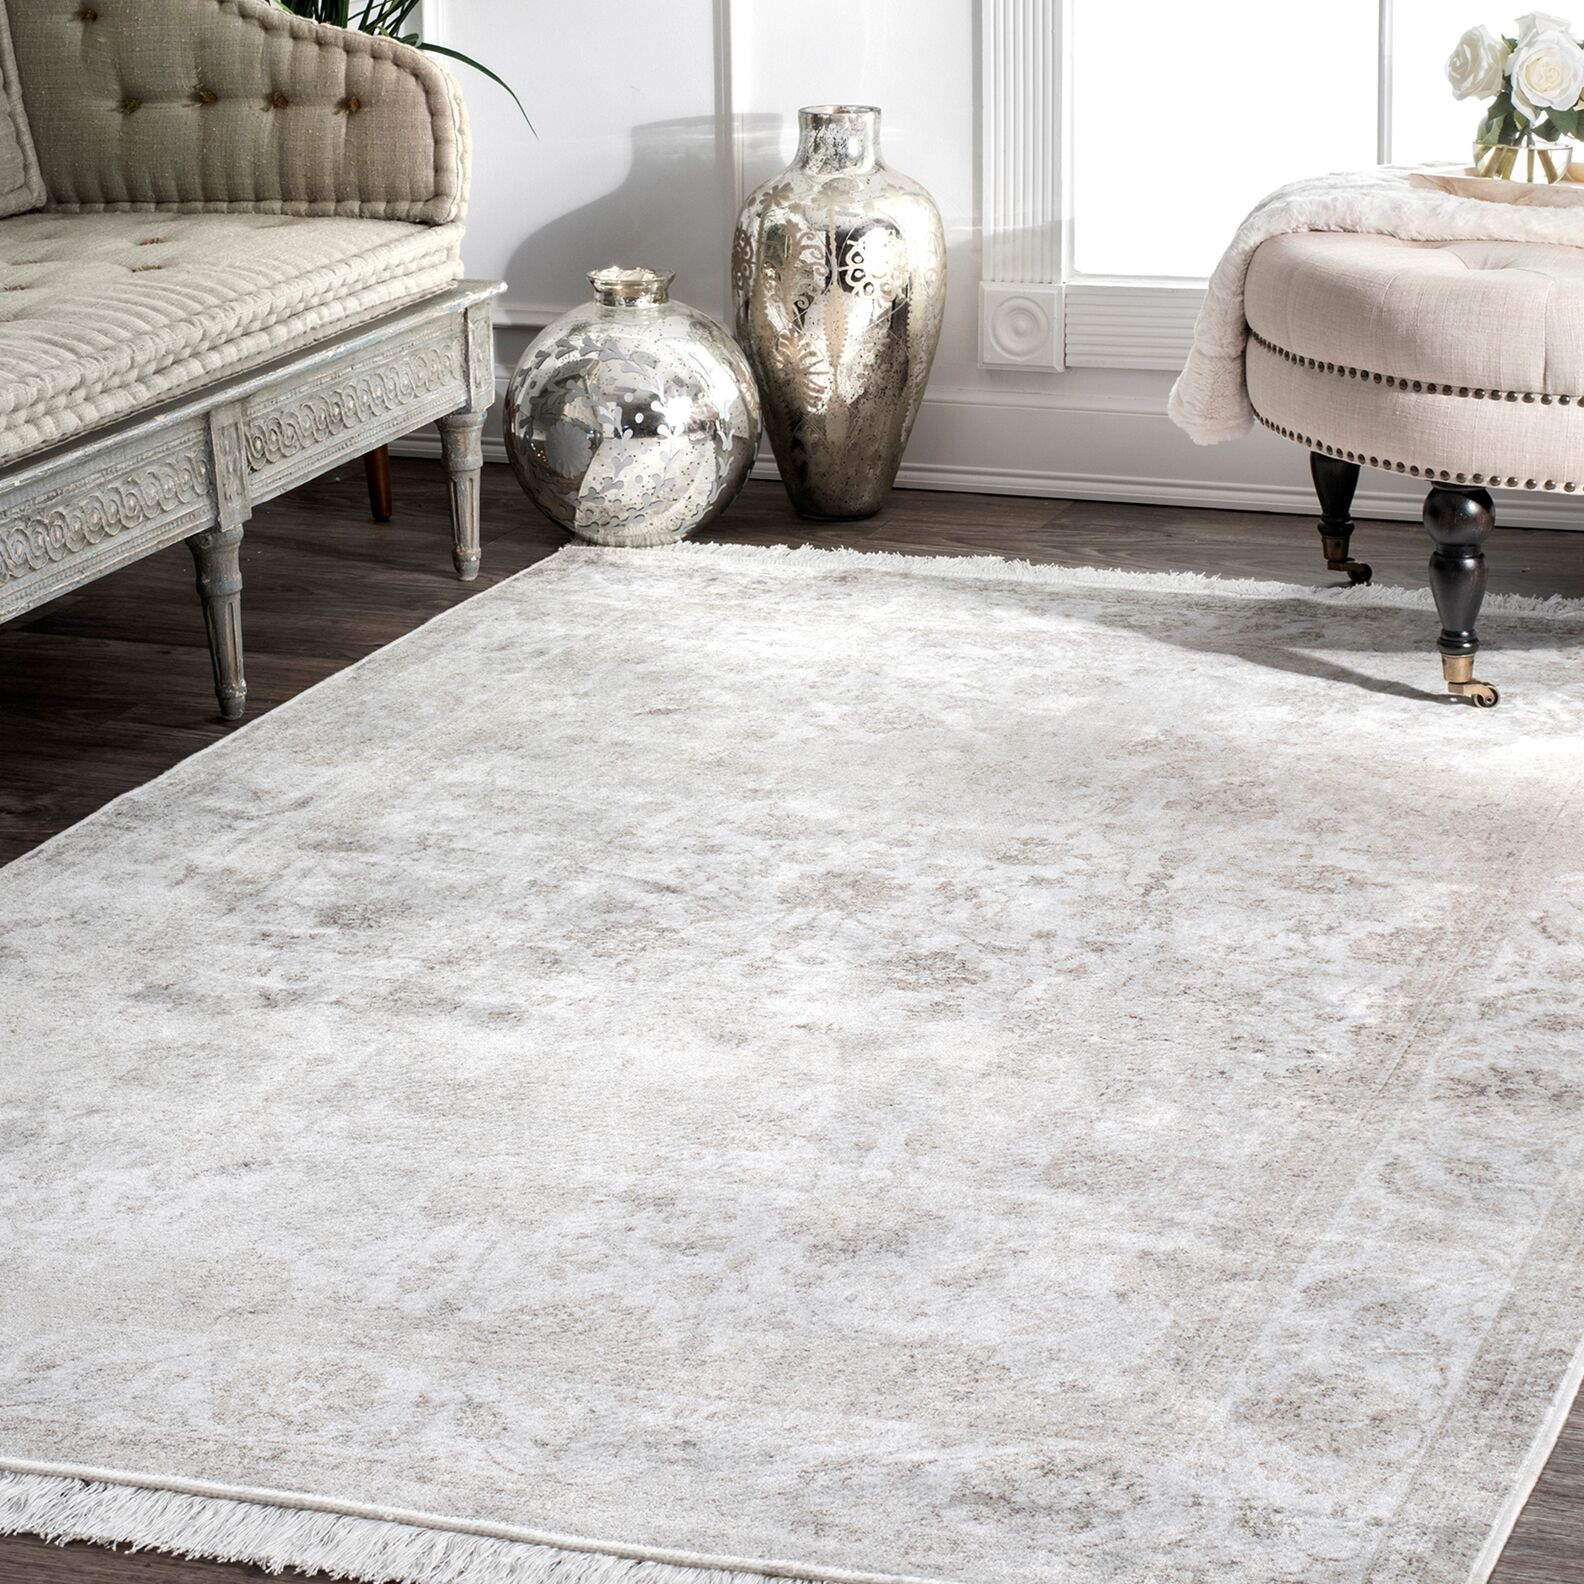 Center Drive Ivory Area Rug Rug Size: Rectangle 7'6